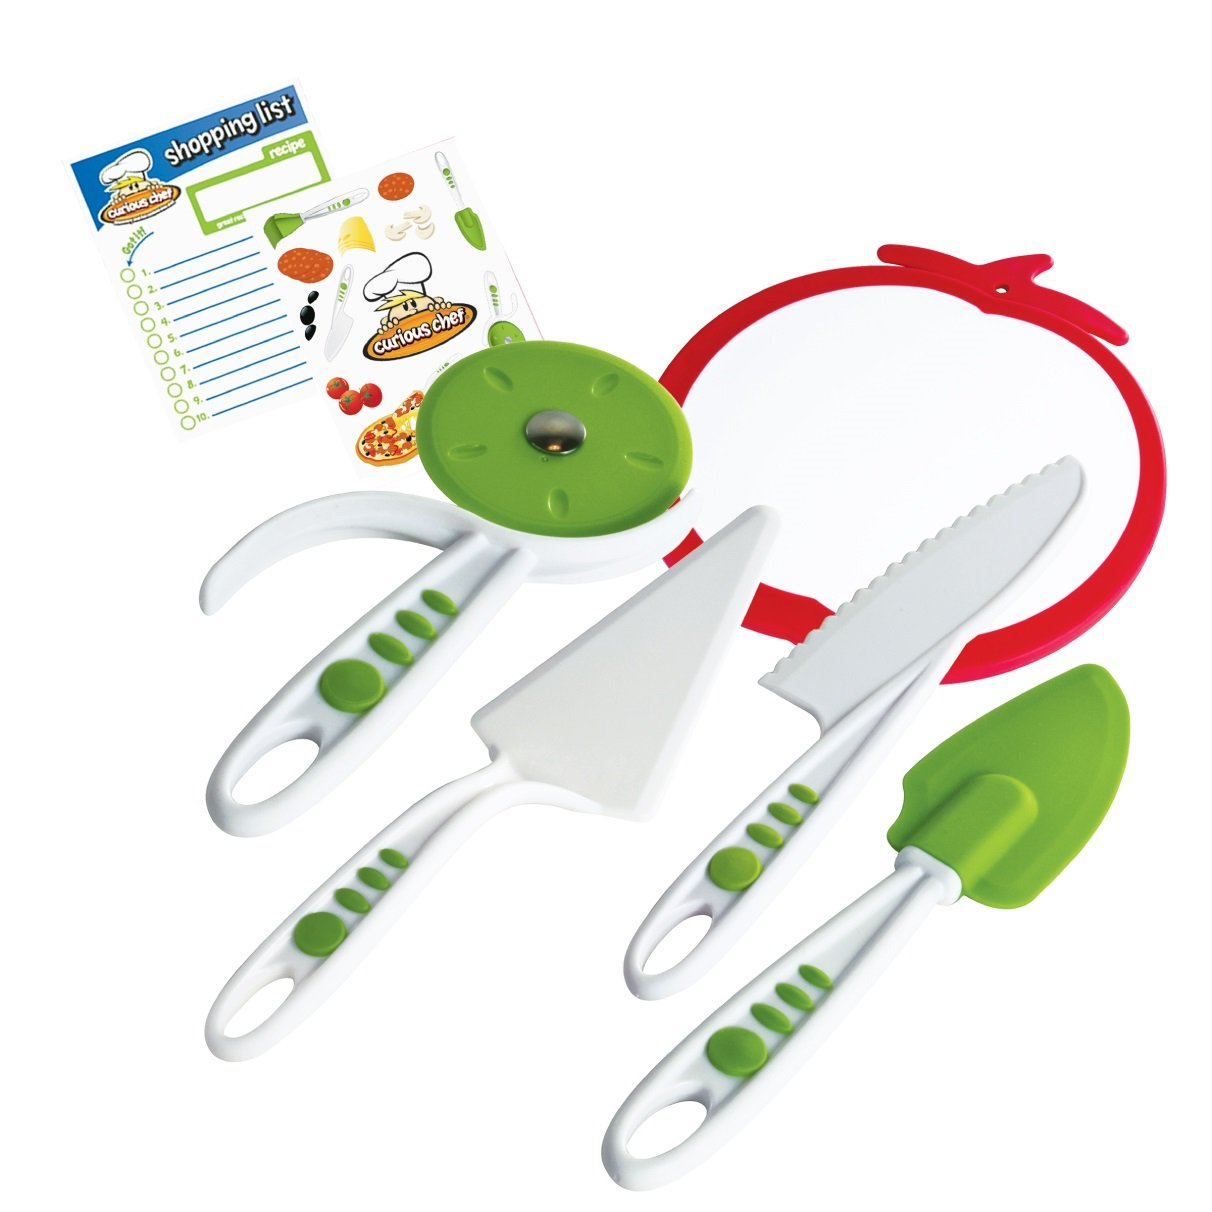 Curious Chef 5-Piece Pizza Kit TCC50105